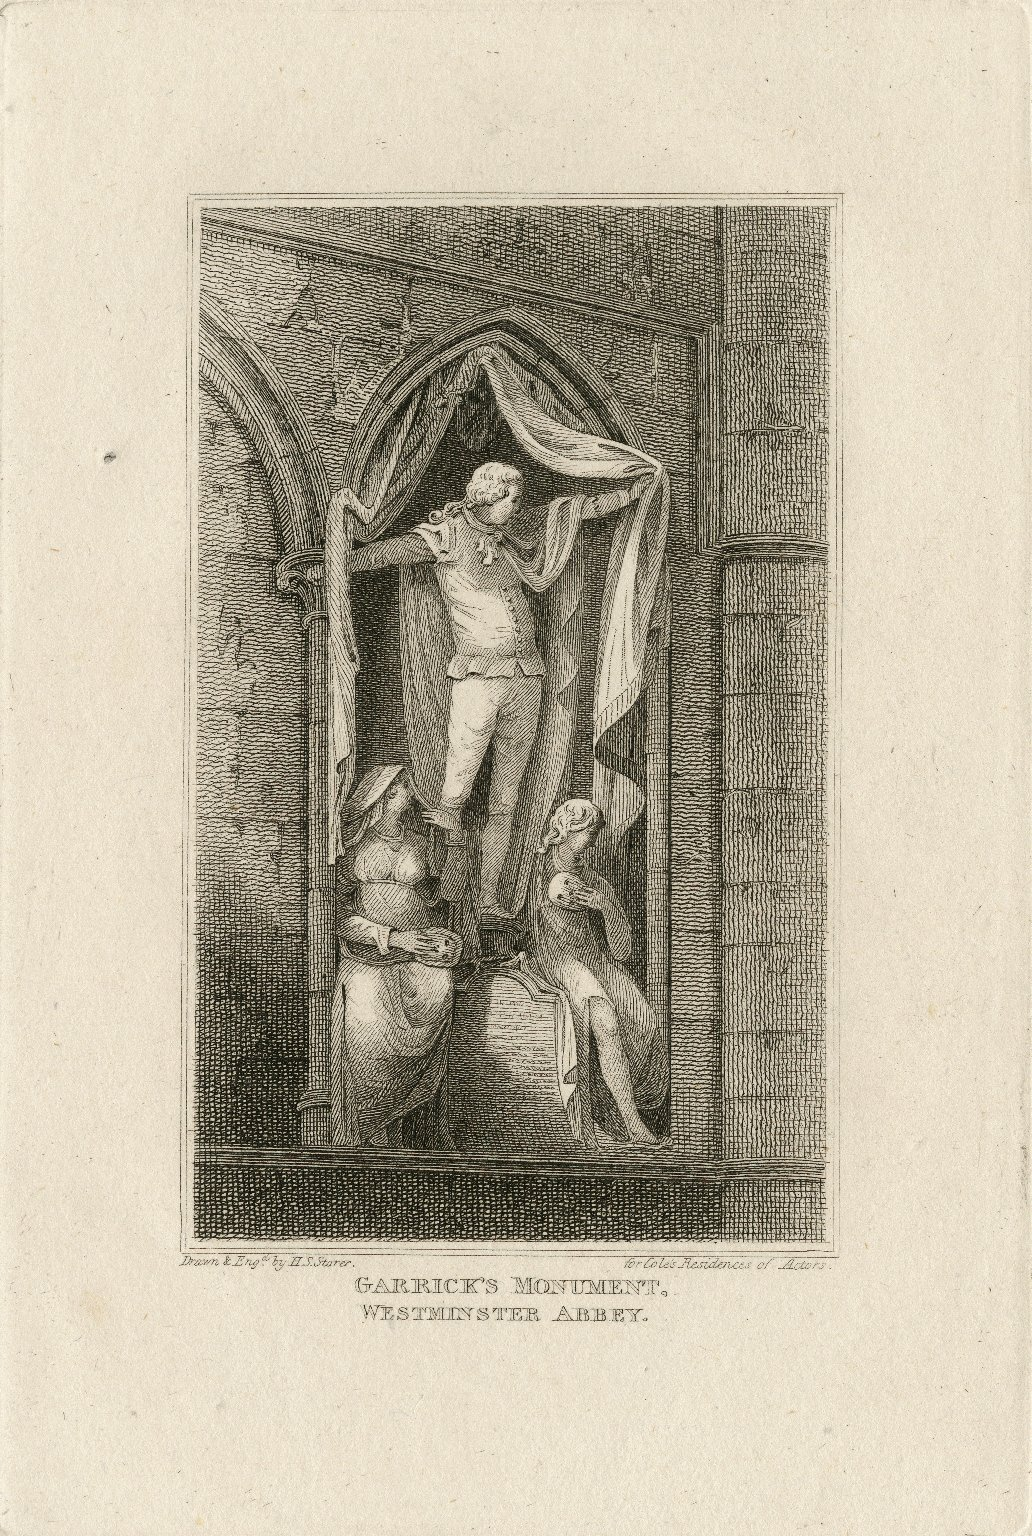 Garrick's monument, Westminster abbey [graphic] / drawn & engd. by H.S. Storer for Cole's Residences of actors.